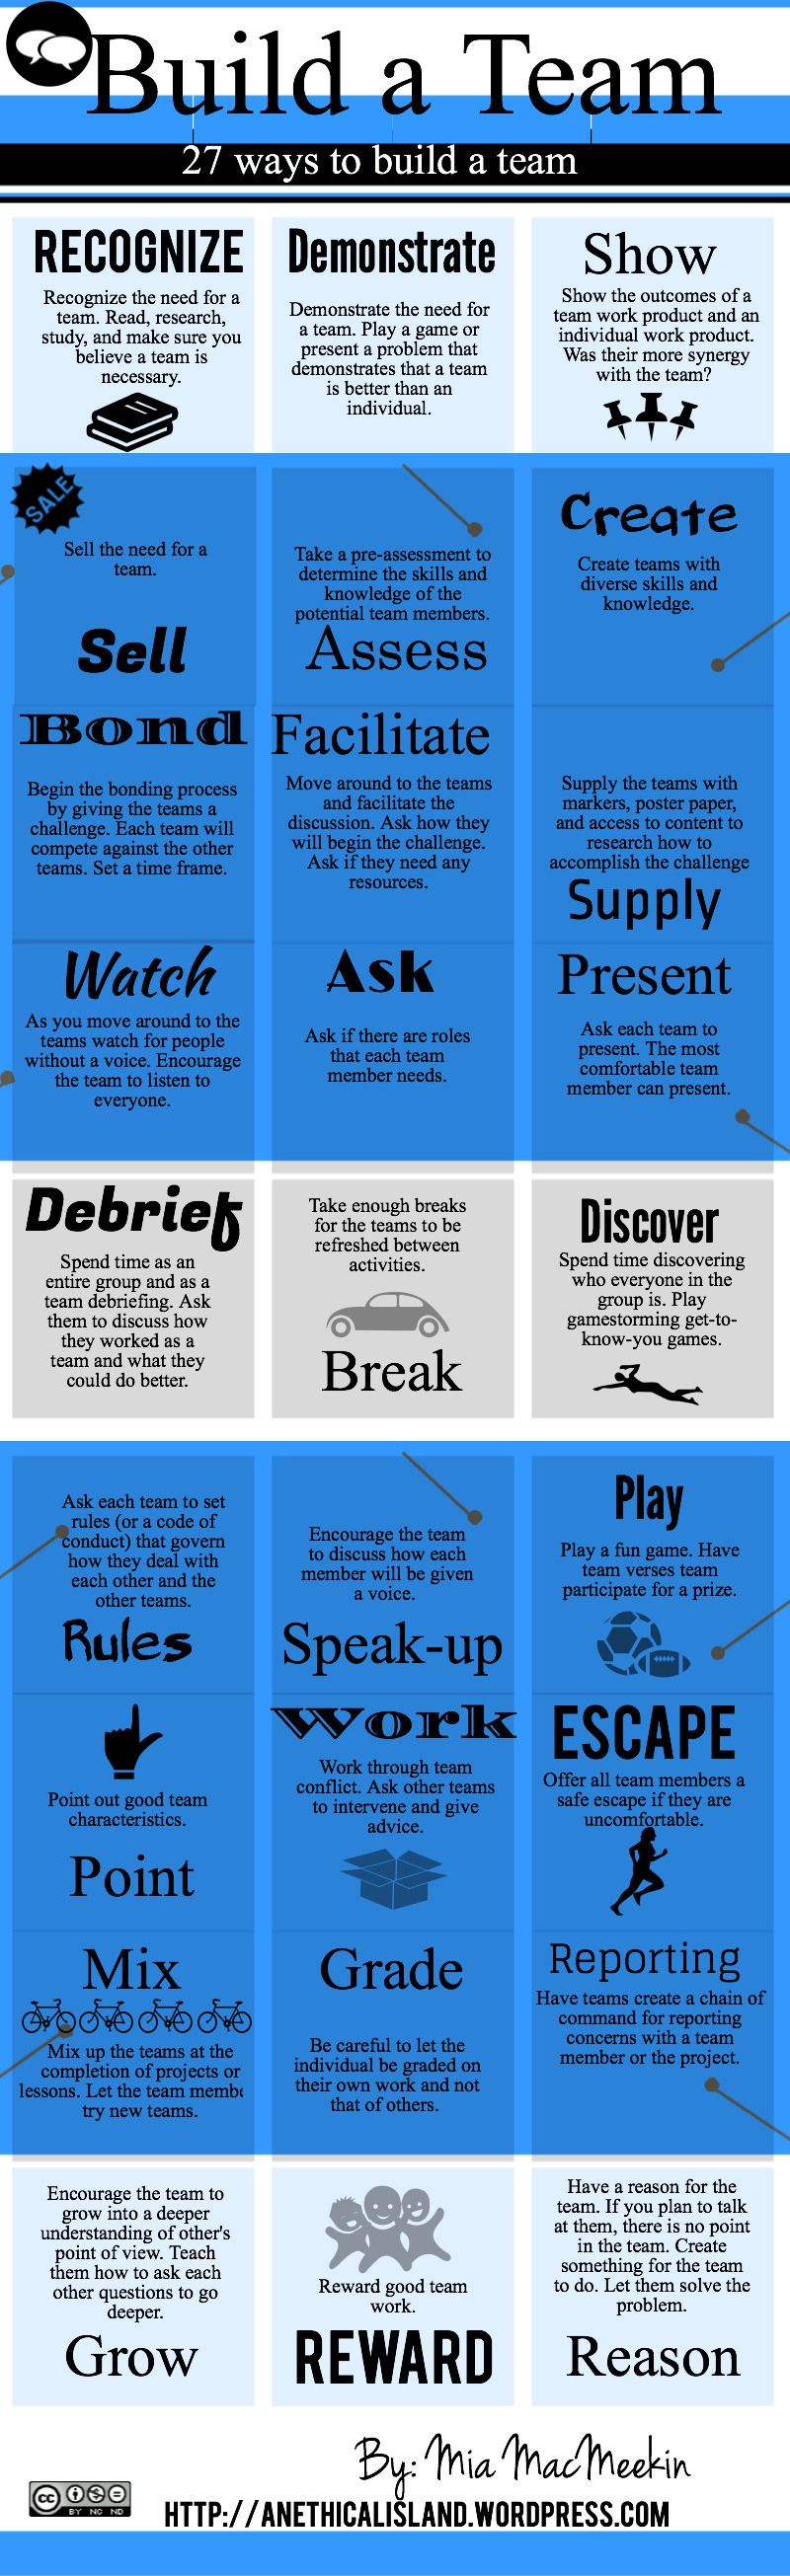 build a team technology teaching and classroom infographic